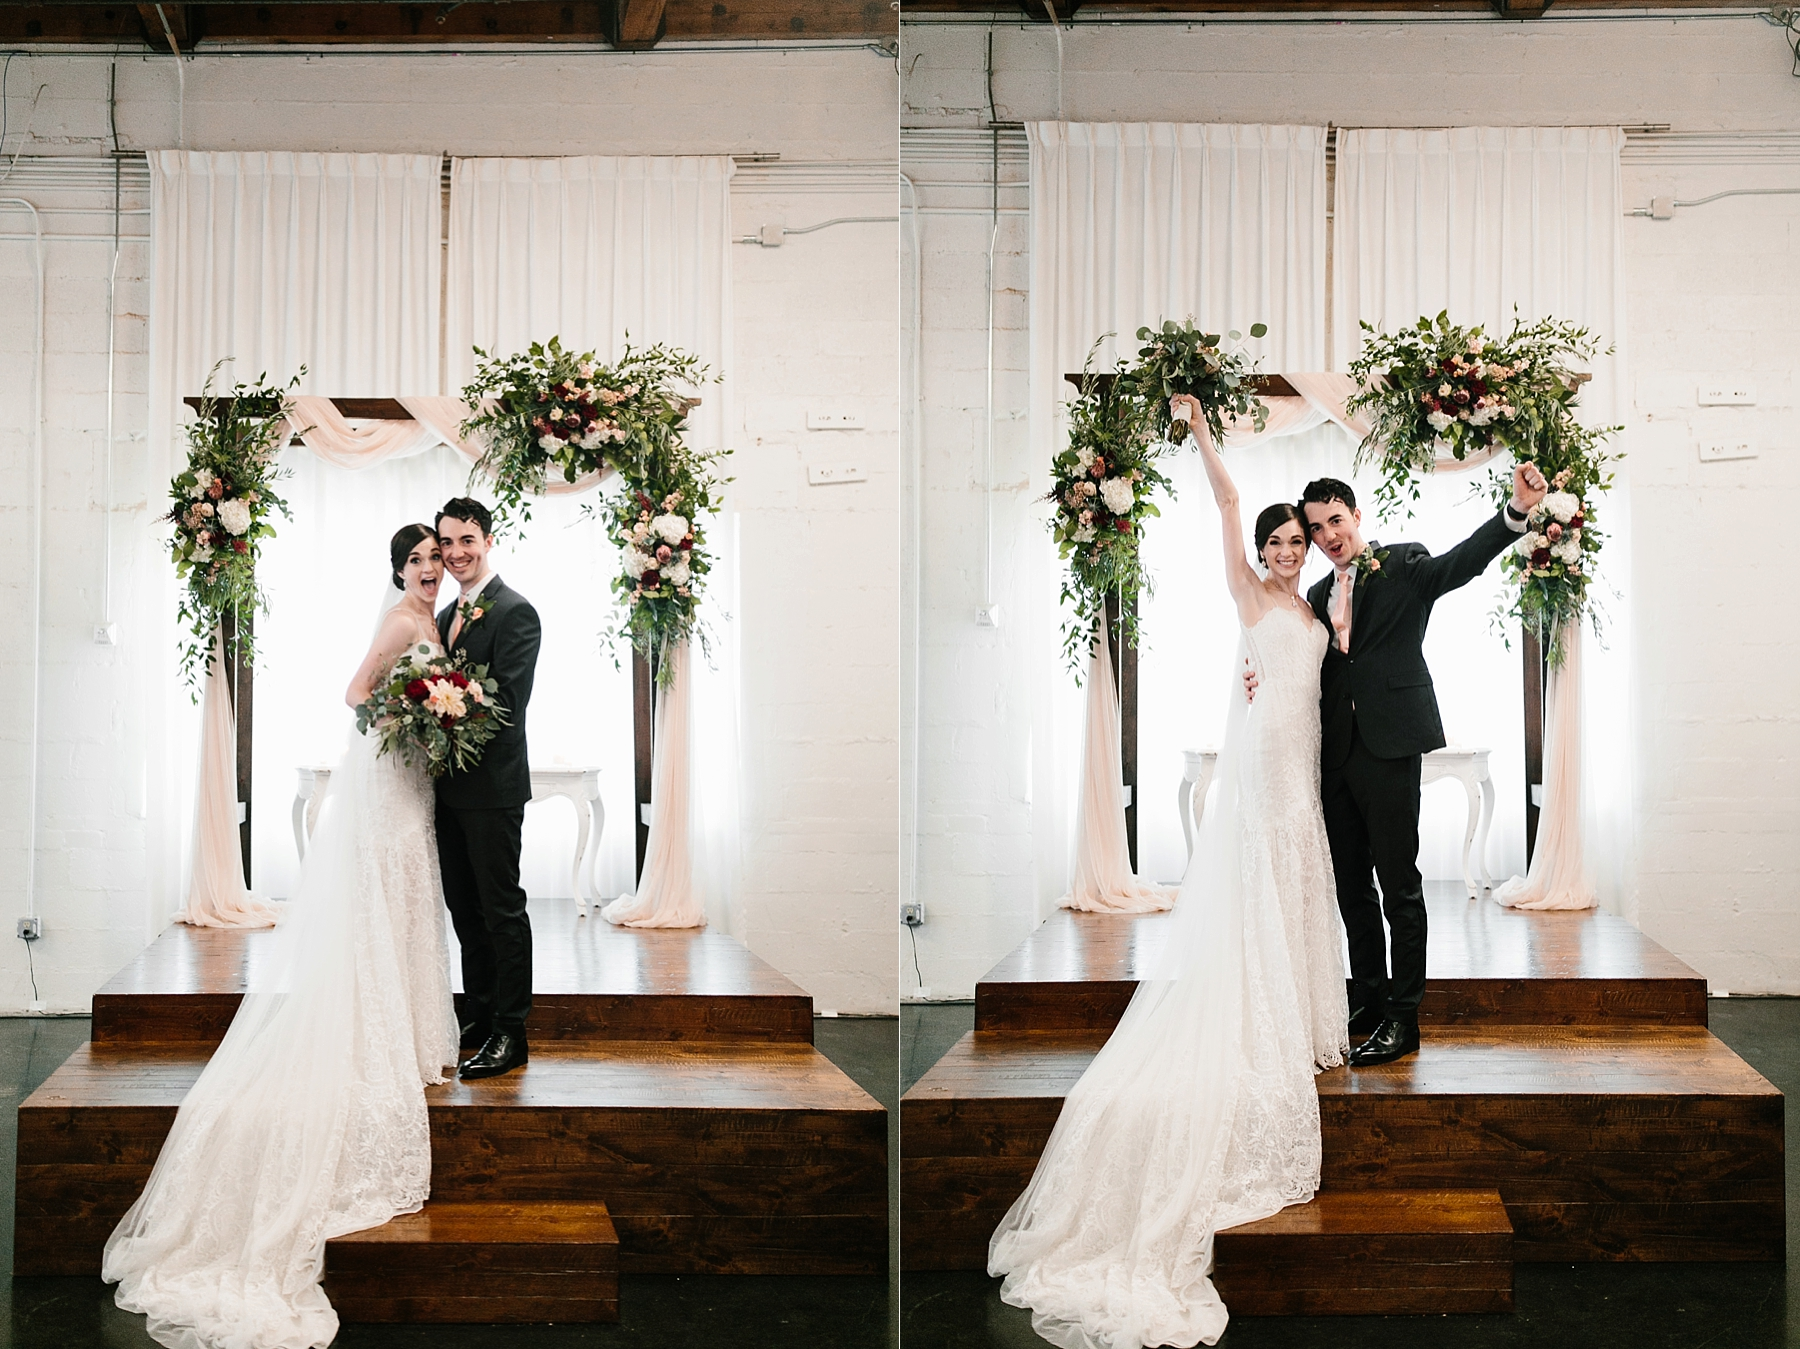 Emily + Caleb _ an elegant, intentional, industrial style wedding with navy + gold accents at 6500 in Dallas, TX by North Texas Wedding Photographer Rachel Meagan Photography _ 111